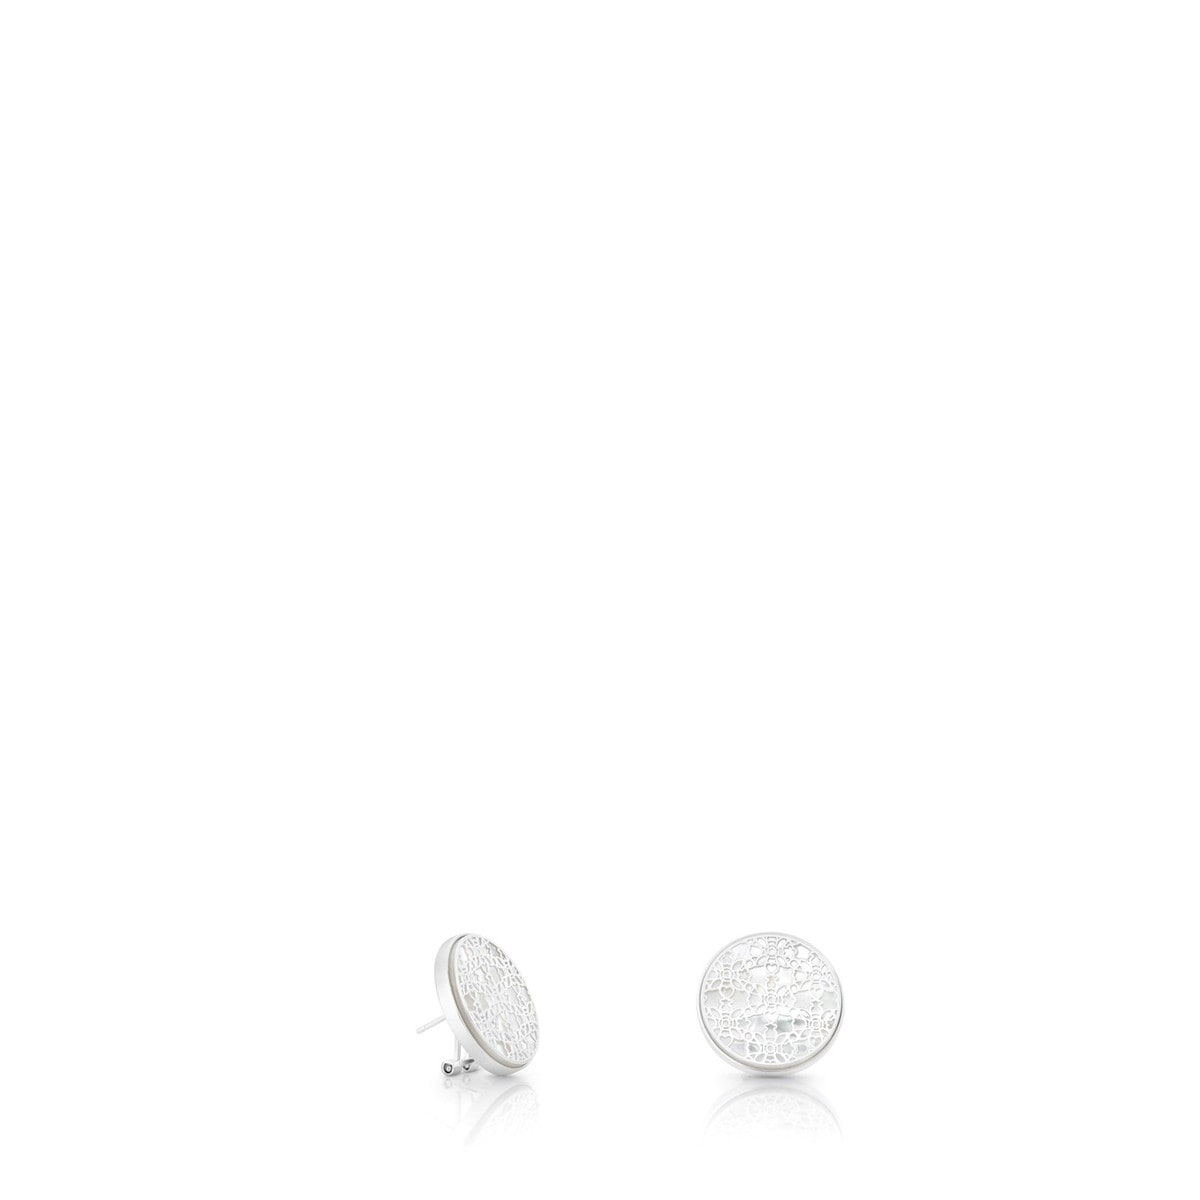 Silver Chantilly Earrings with Mother of Pearl